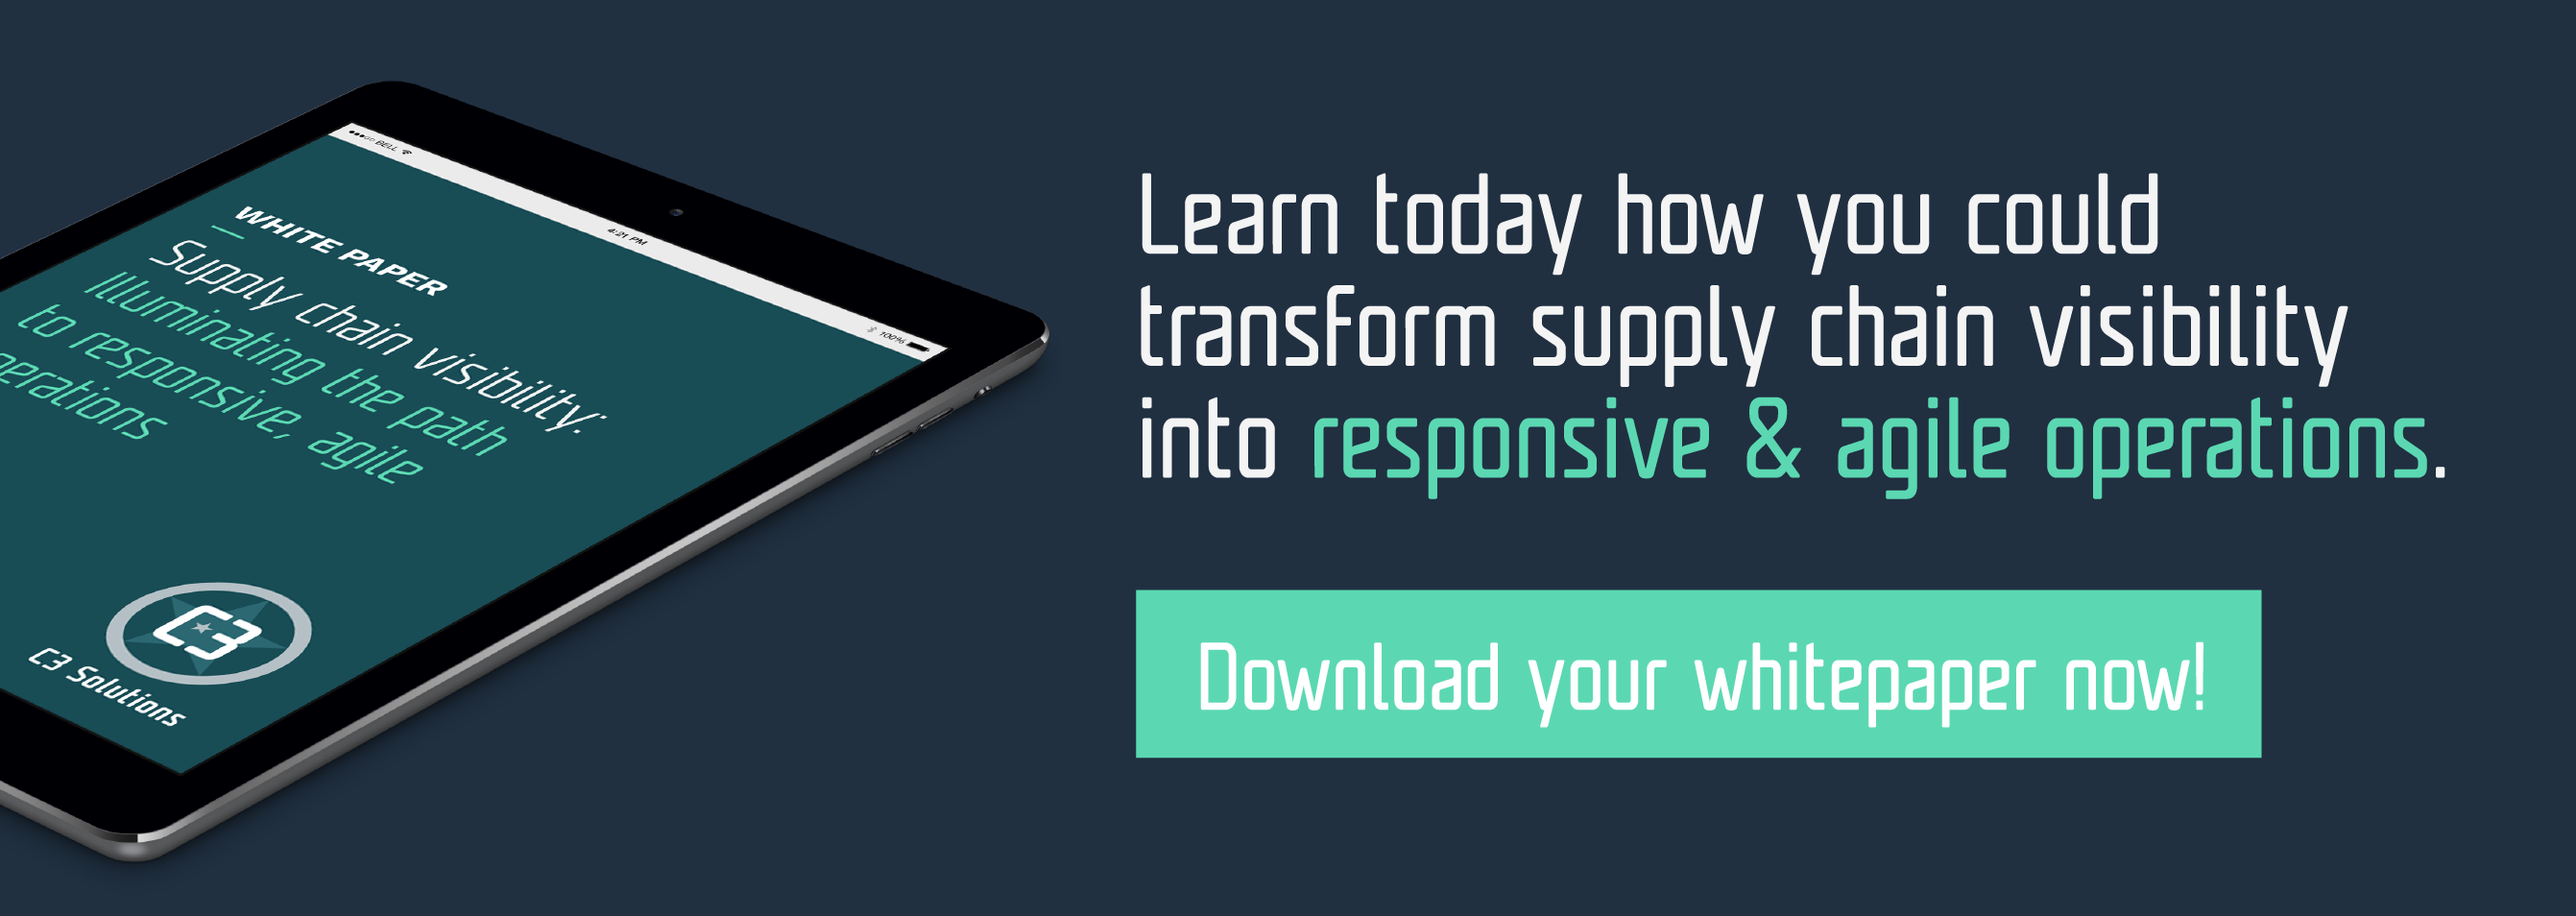 Supply Chain Visibility White Paper CTA-1.png